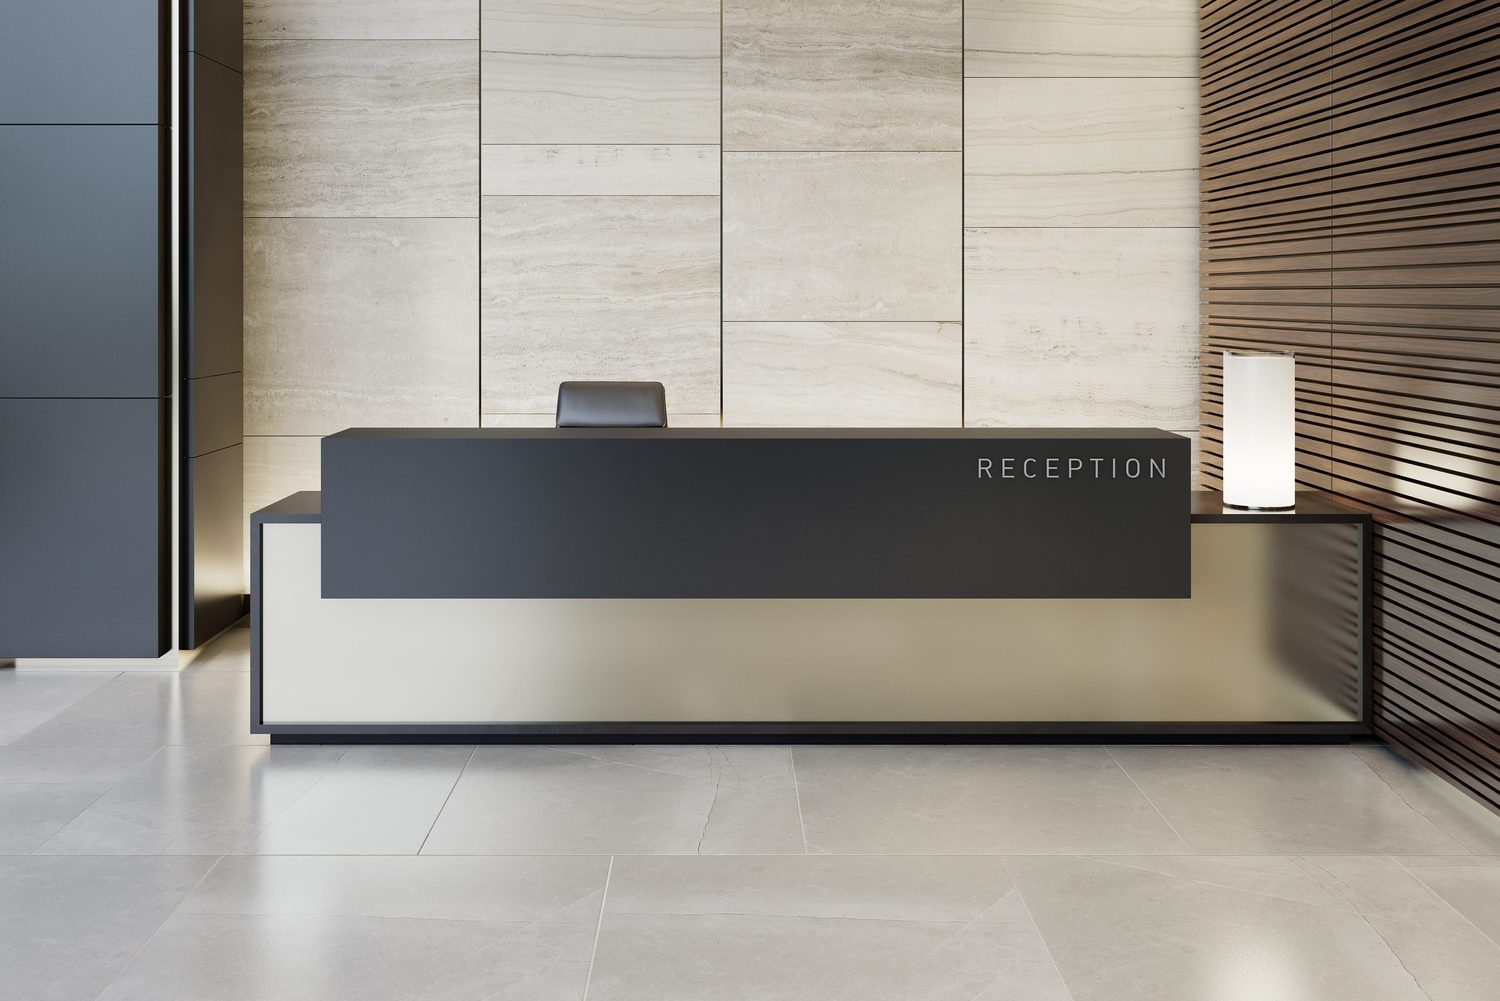 Reception desk luxurious open space interior with marble tiles with copy space